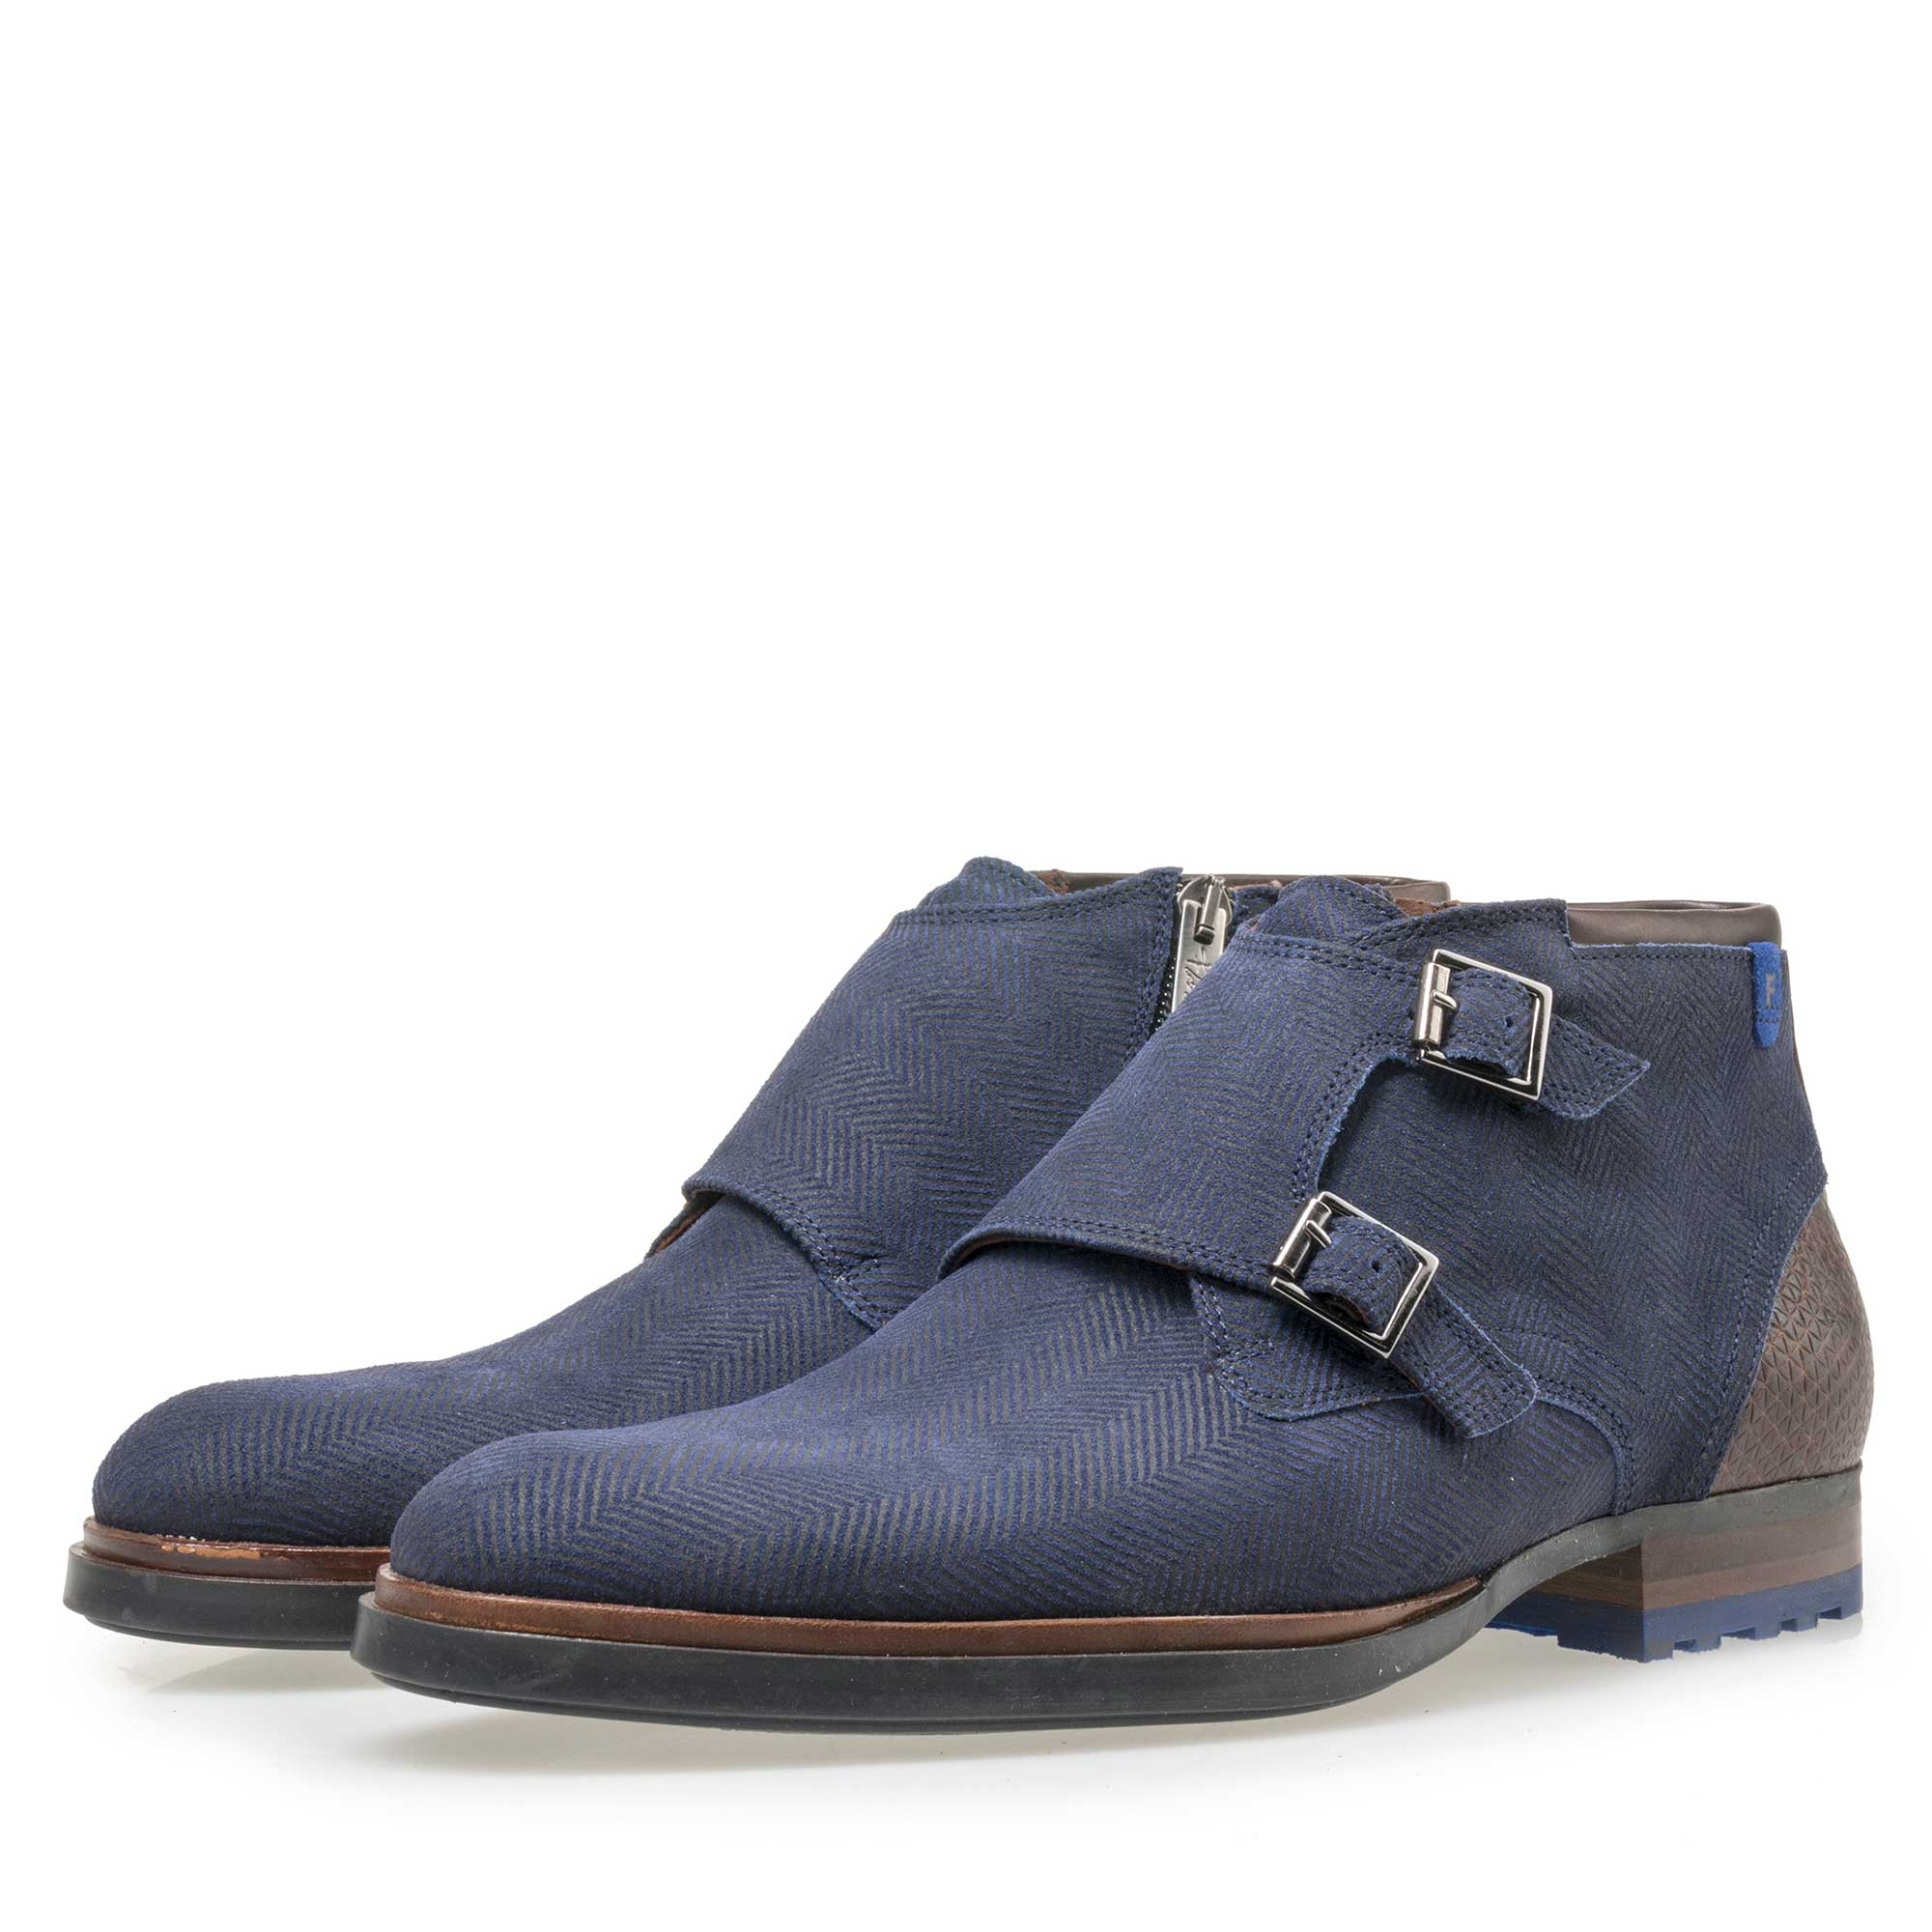 10982/02 - Floris van Bommel men's blue suede leather zip boot